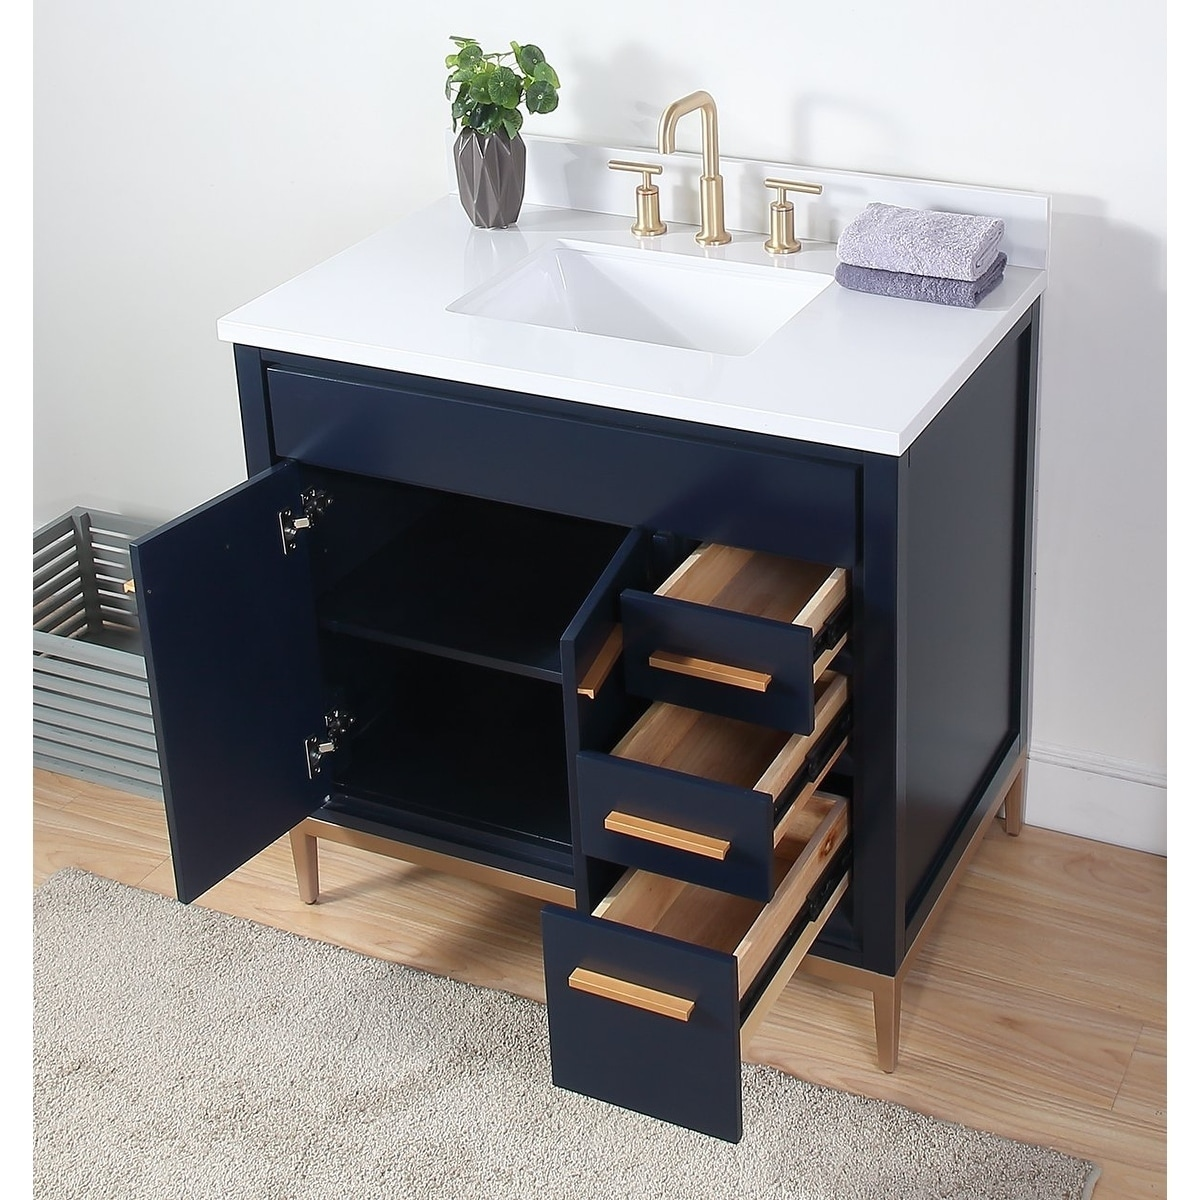 36 Tennant Brand Beatrice Modern Navy Blue Bathroom Vanity Overstock 29297206